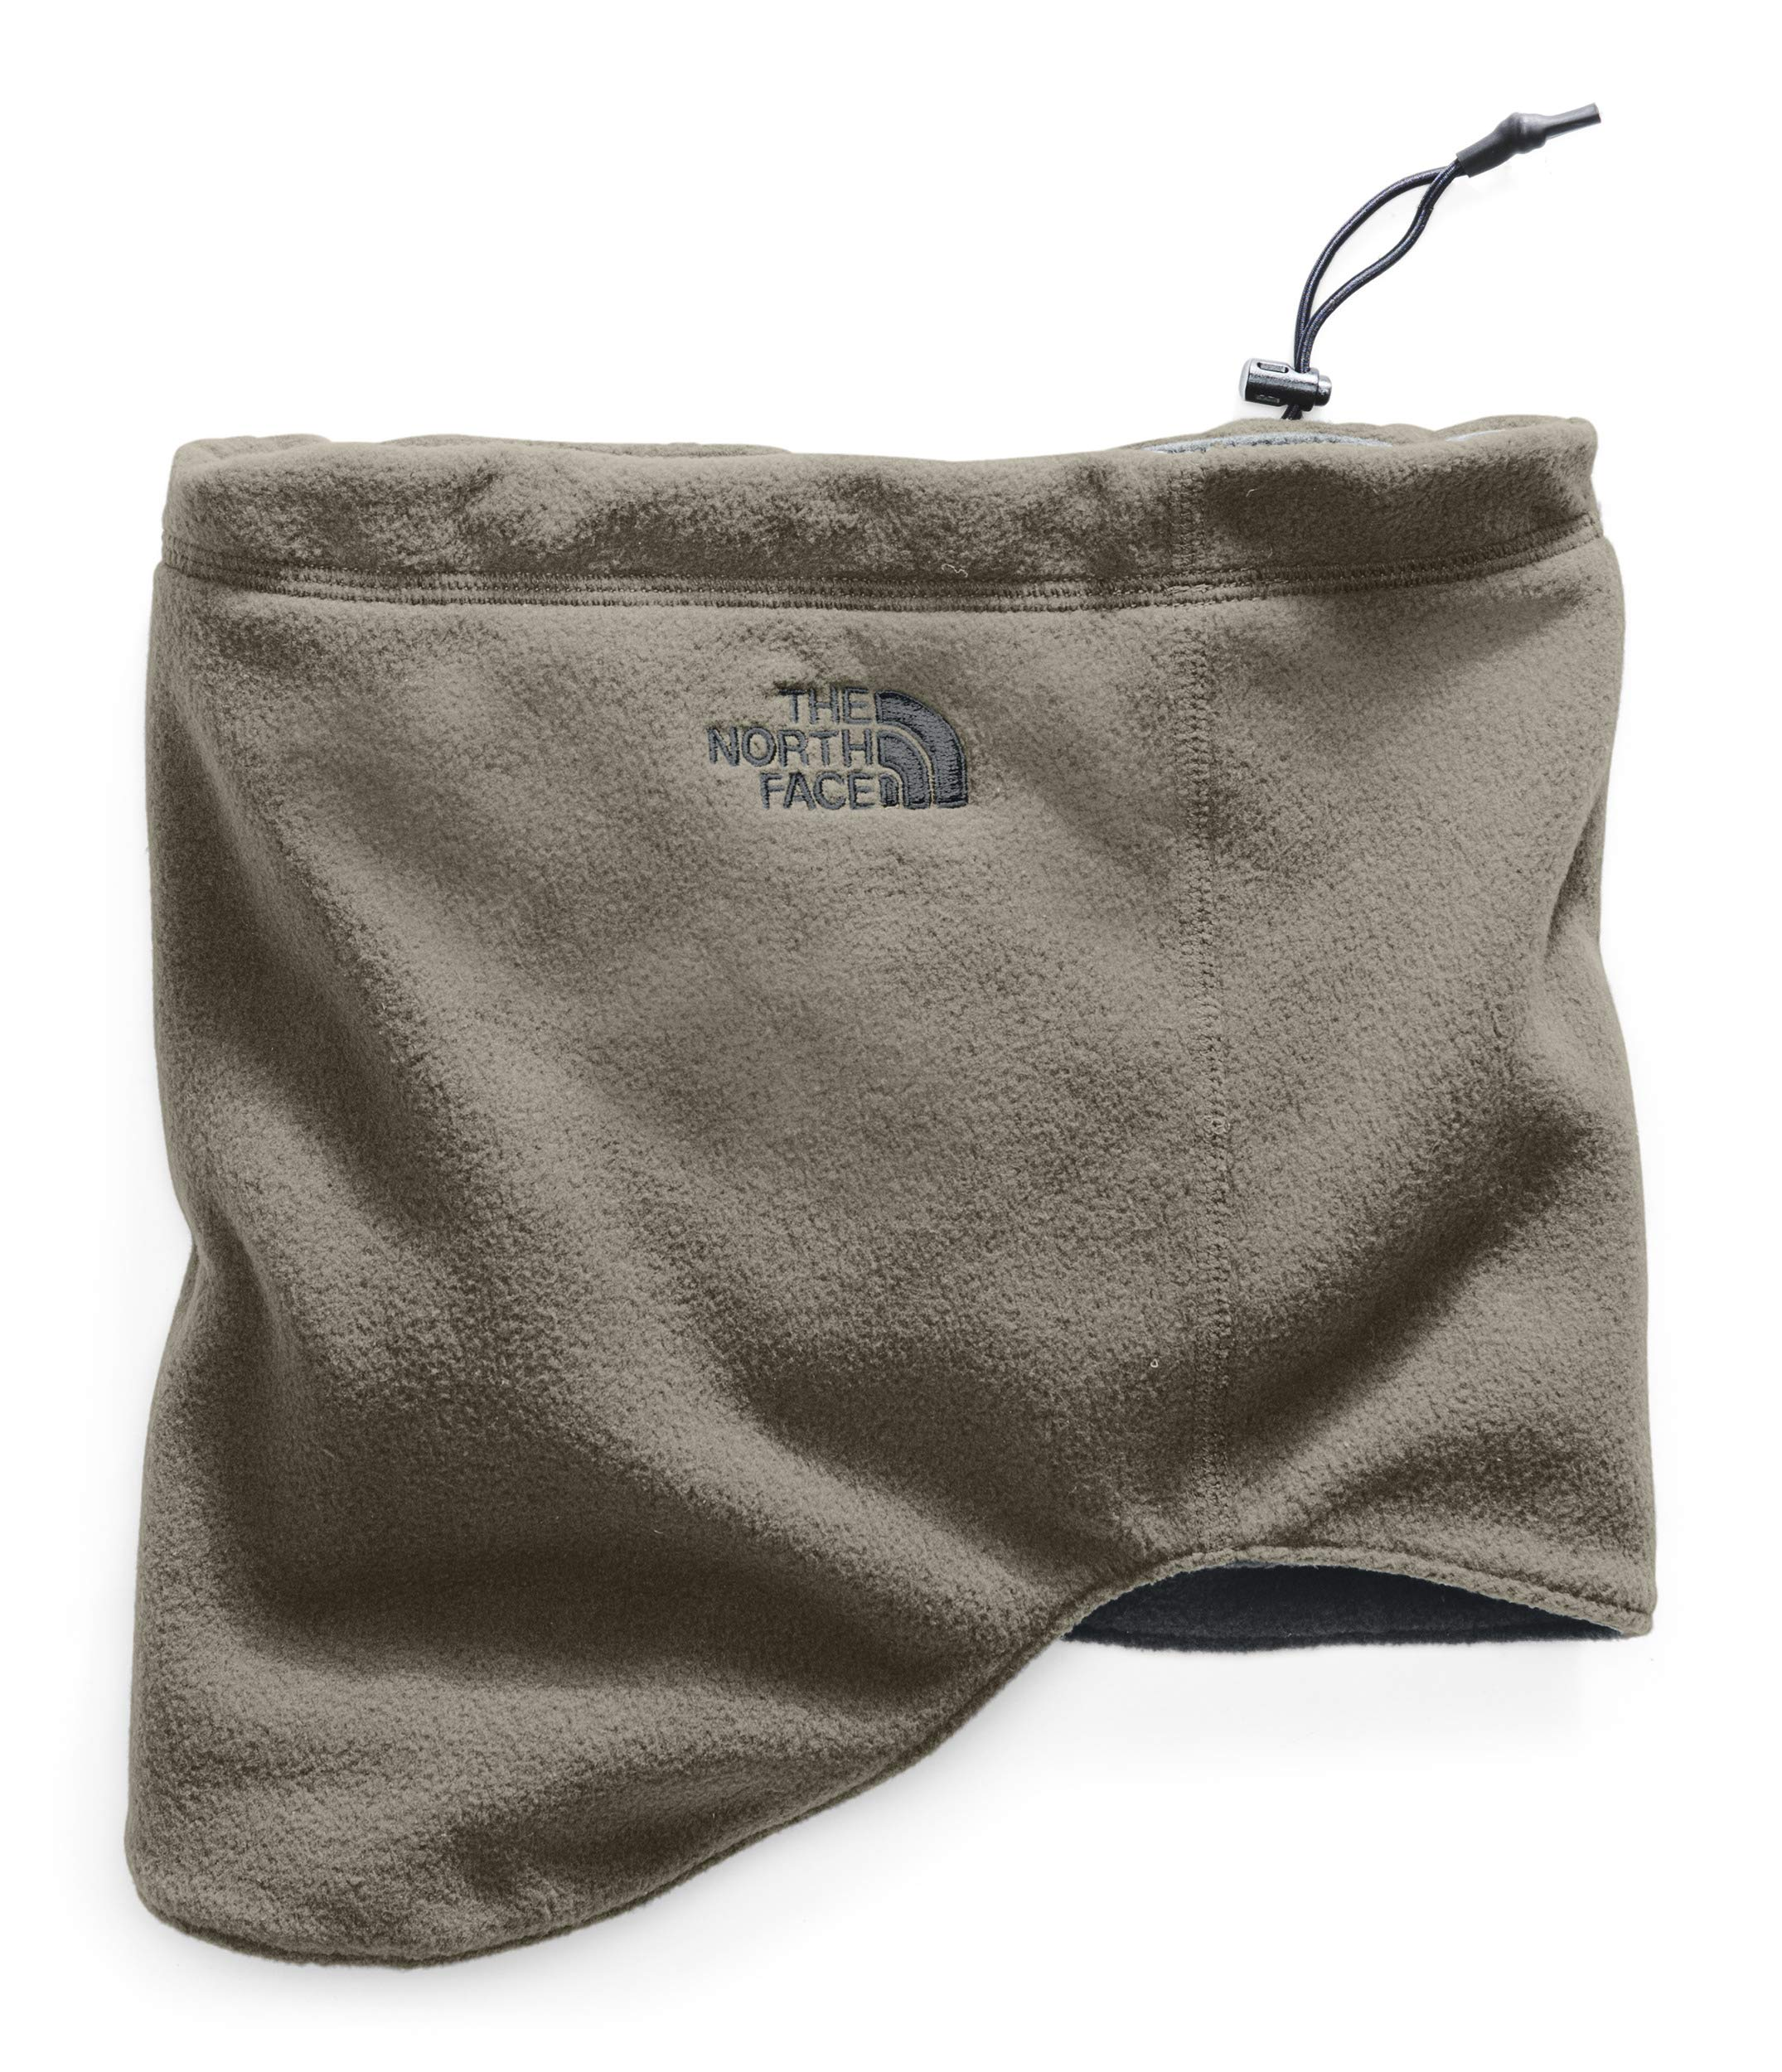 The North Face TNF Standard Issue Gaiter, New Taupe Green/Asphalt Grey, OS by The North Face